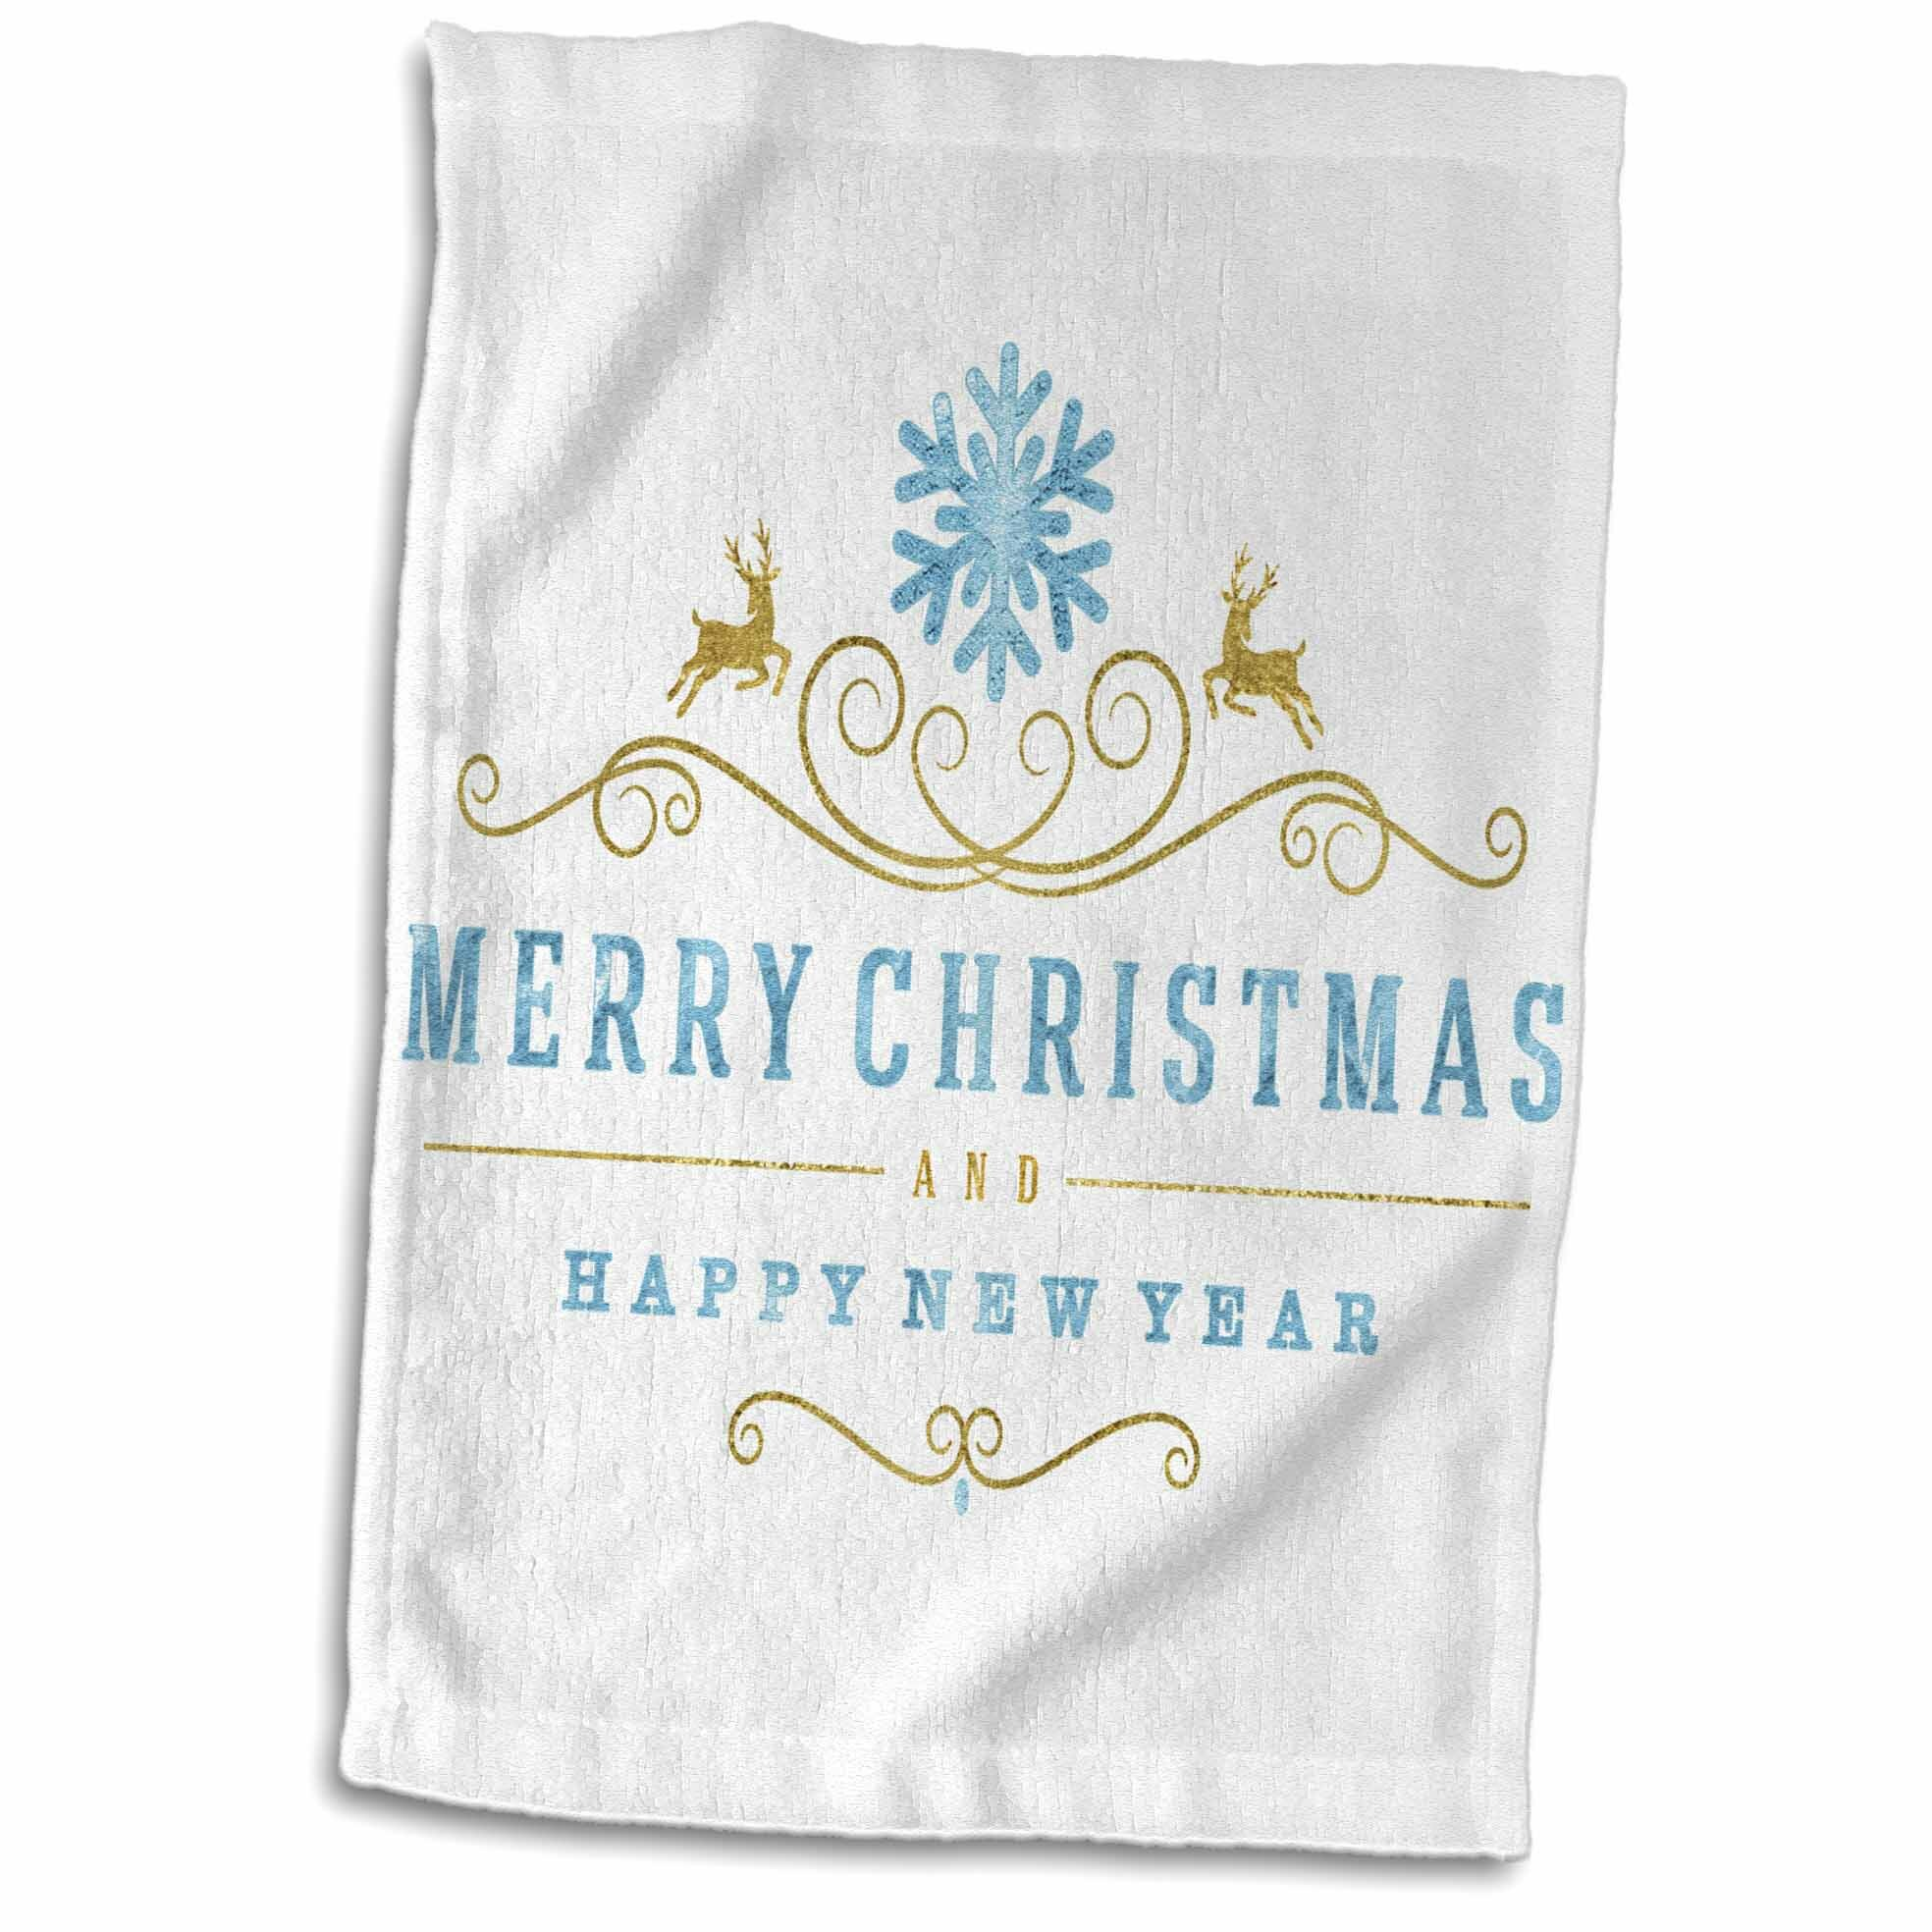 Merry Christmas and Happy New Year Tea Towel